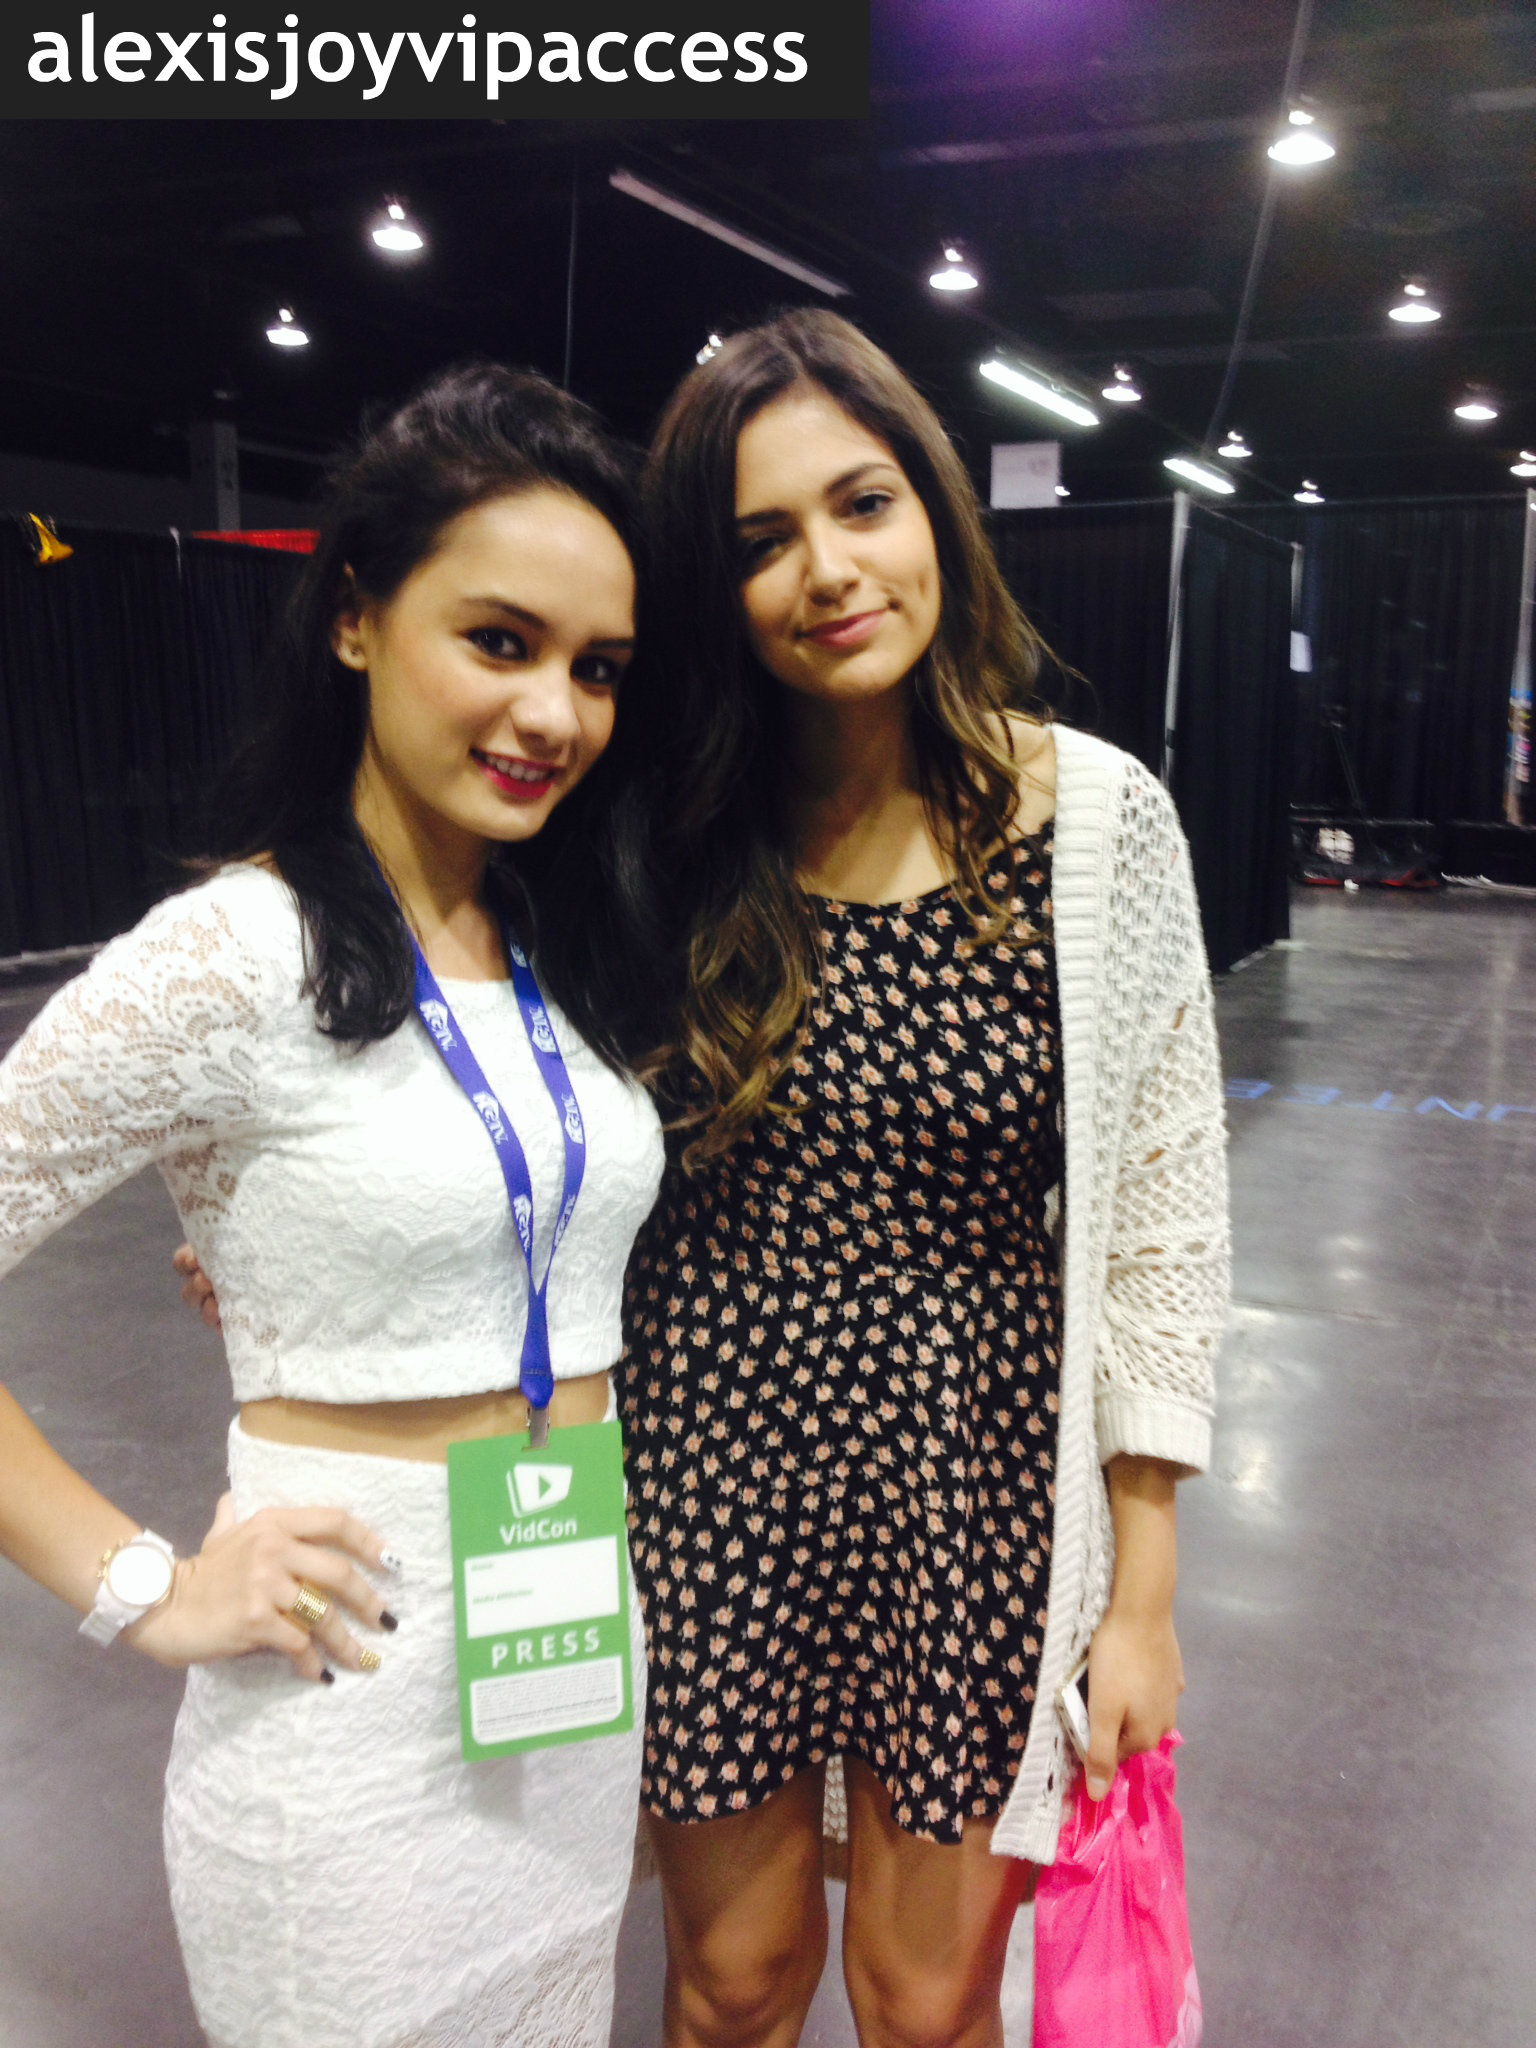 Vipaccessexclusive the radiant bethany mota attends vidcon 2014 vipaccessexclusive the radiant bethany mota attends vidcon 2014 see exclusive pictures here alexisjoyvipaccess m4hsunfo